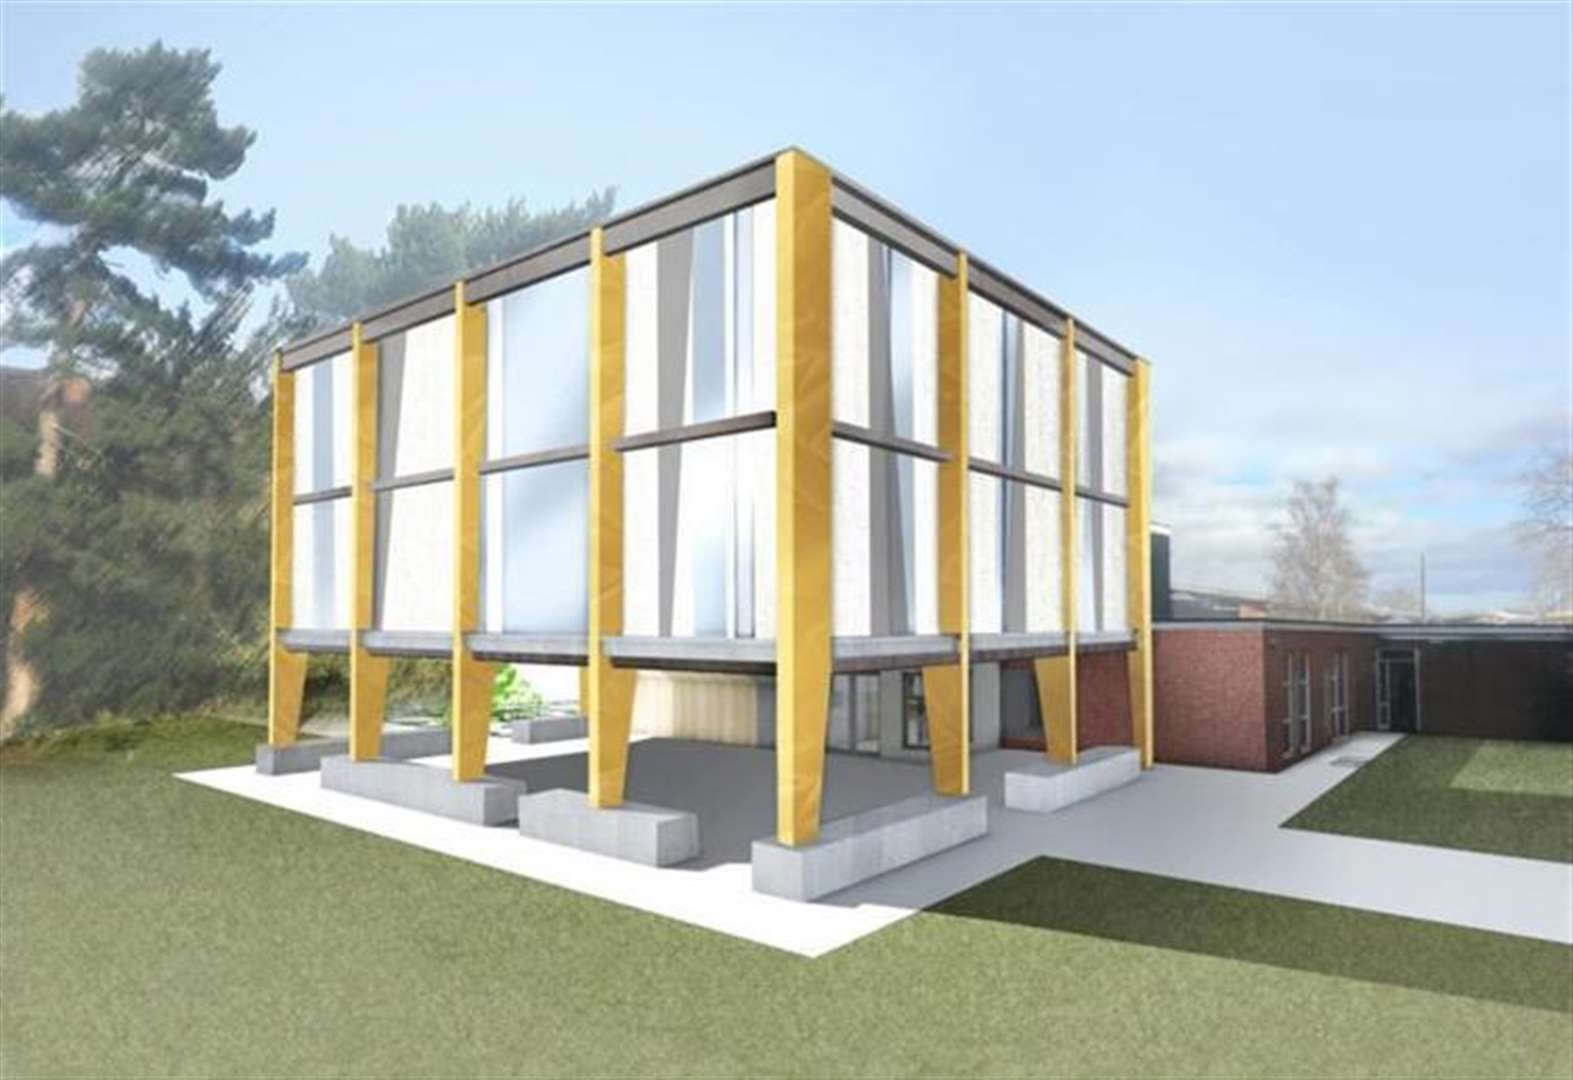 Work starts on Newmarket Academy's new library